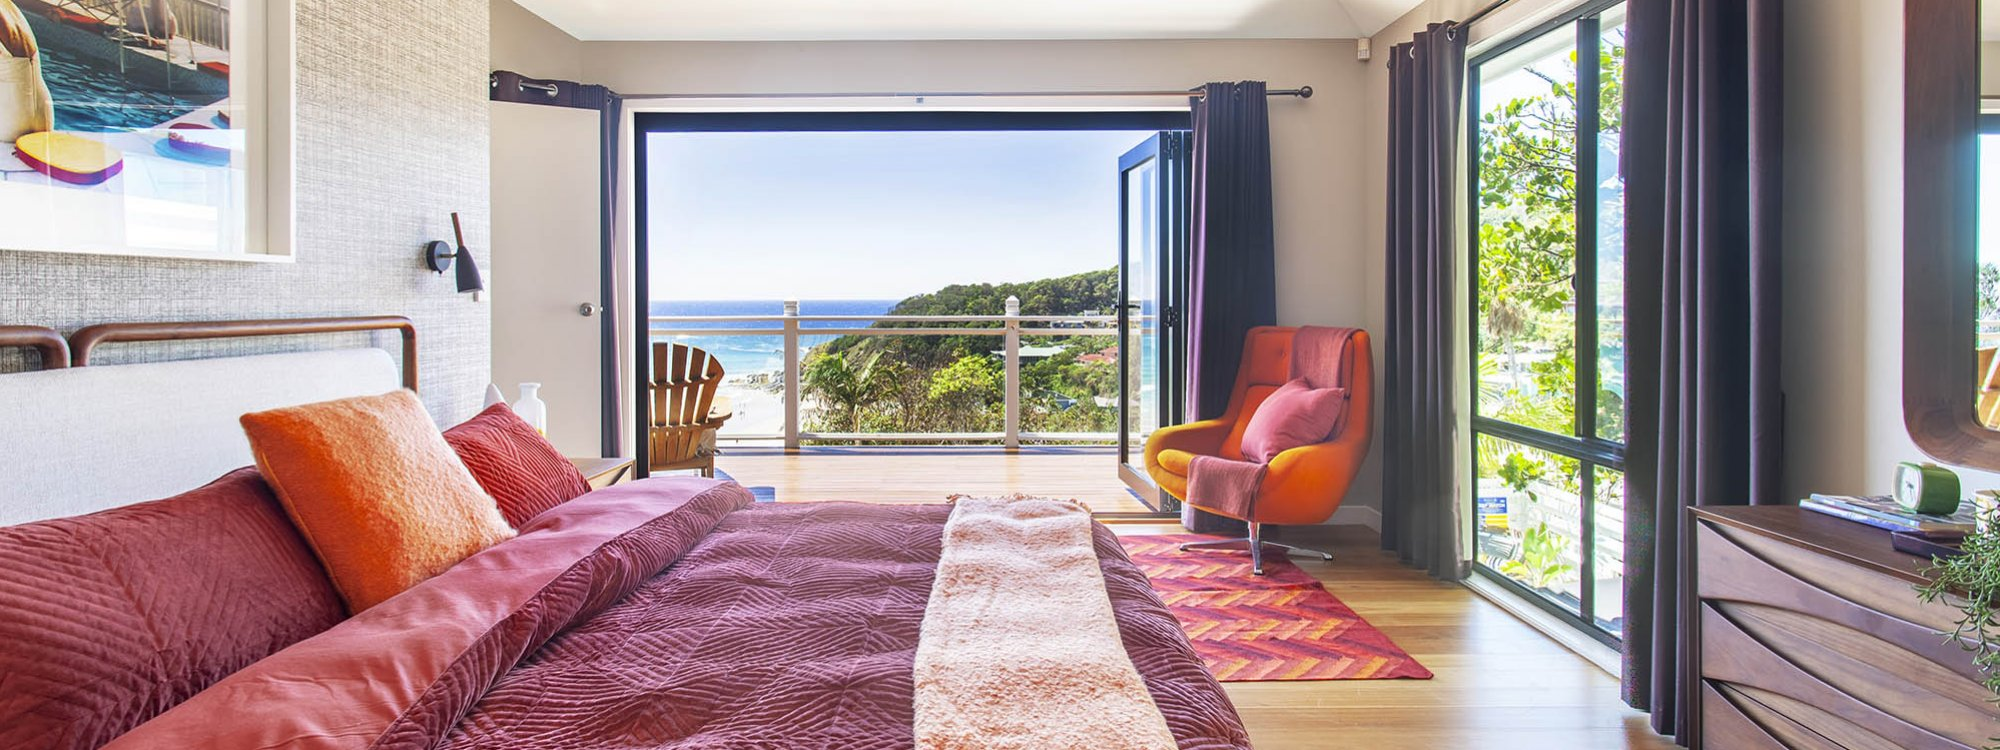 The Palms at Byron - Byron Bay - Bedroom 2d